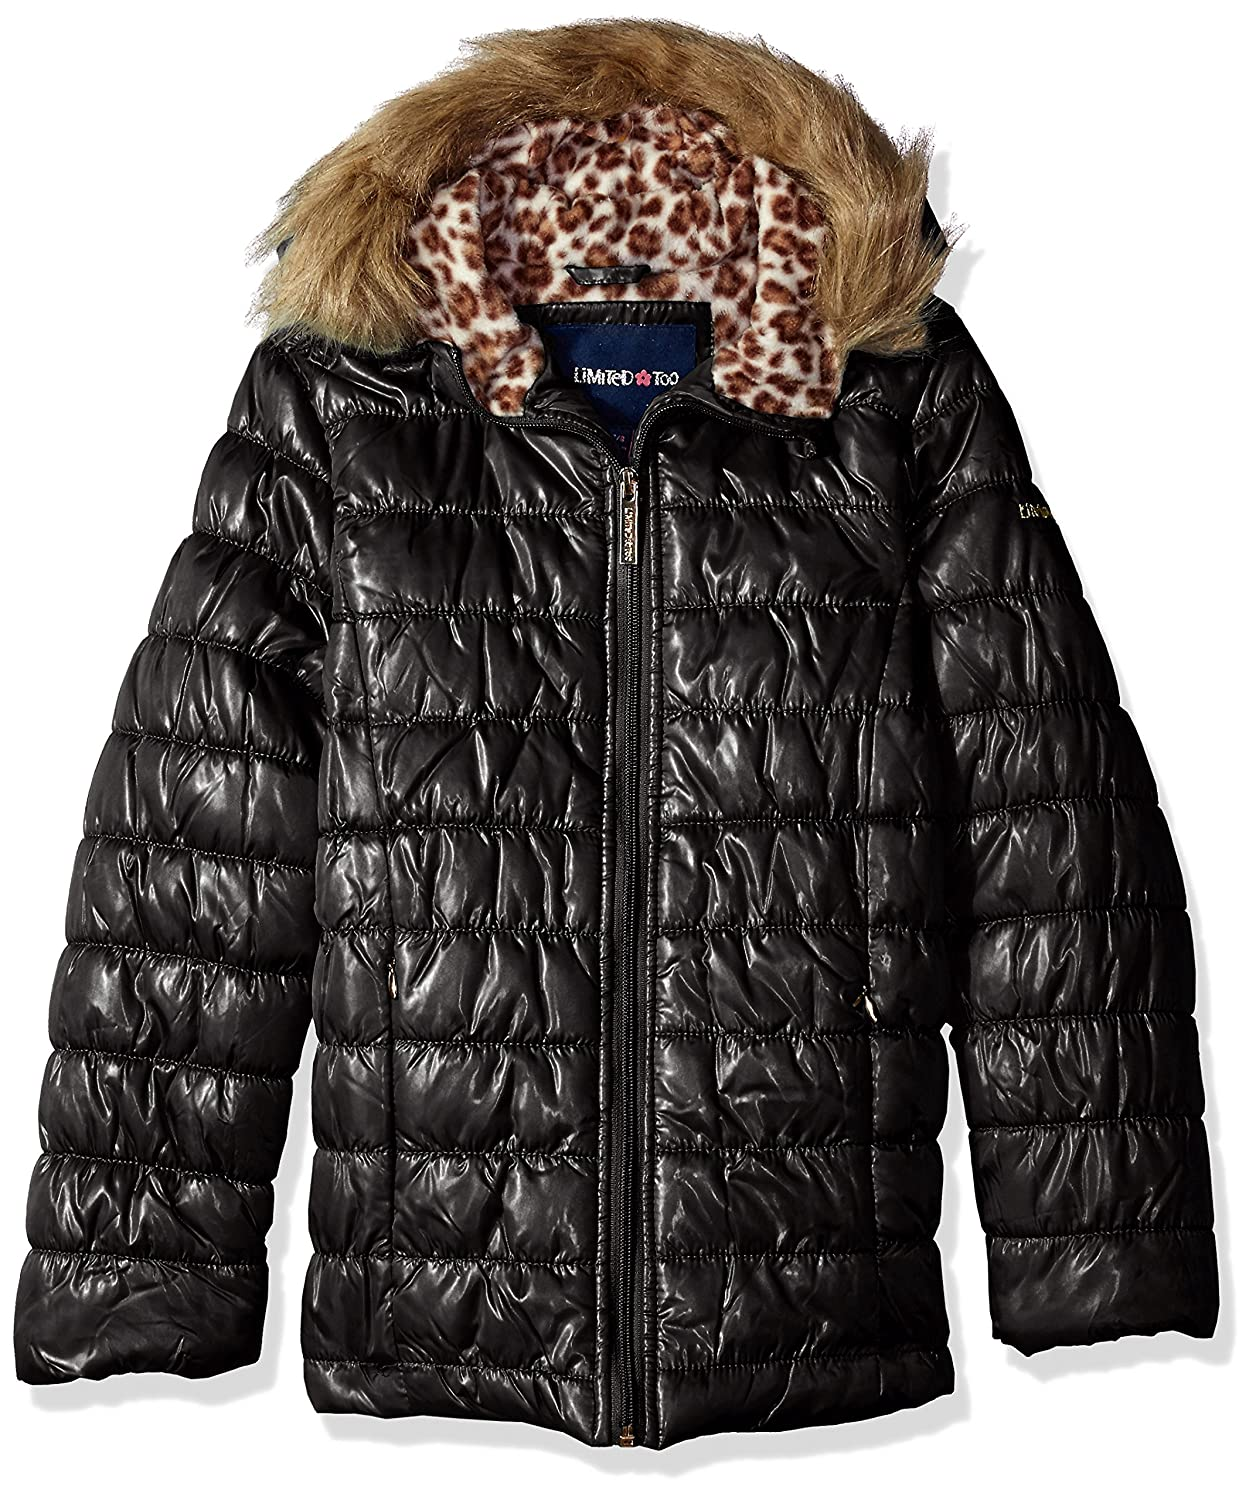 amazon com limited too girls quilted iridescent puffer clothing rh amazon com